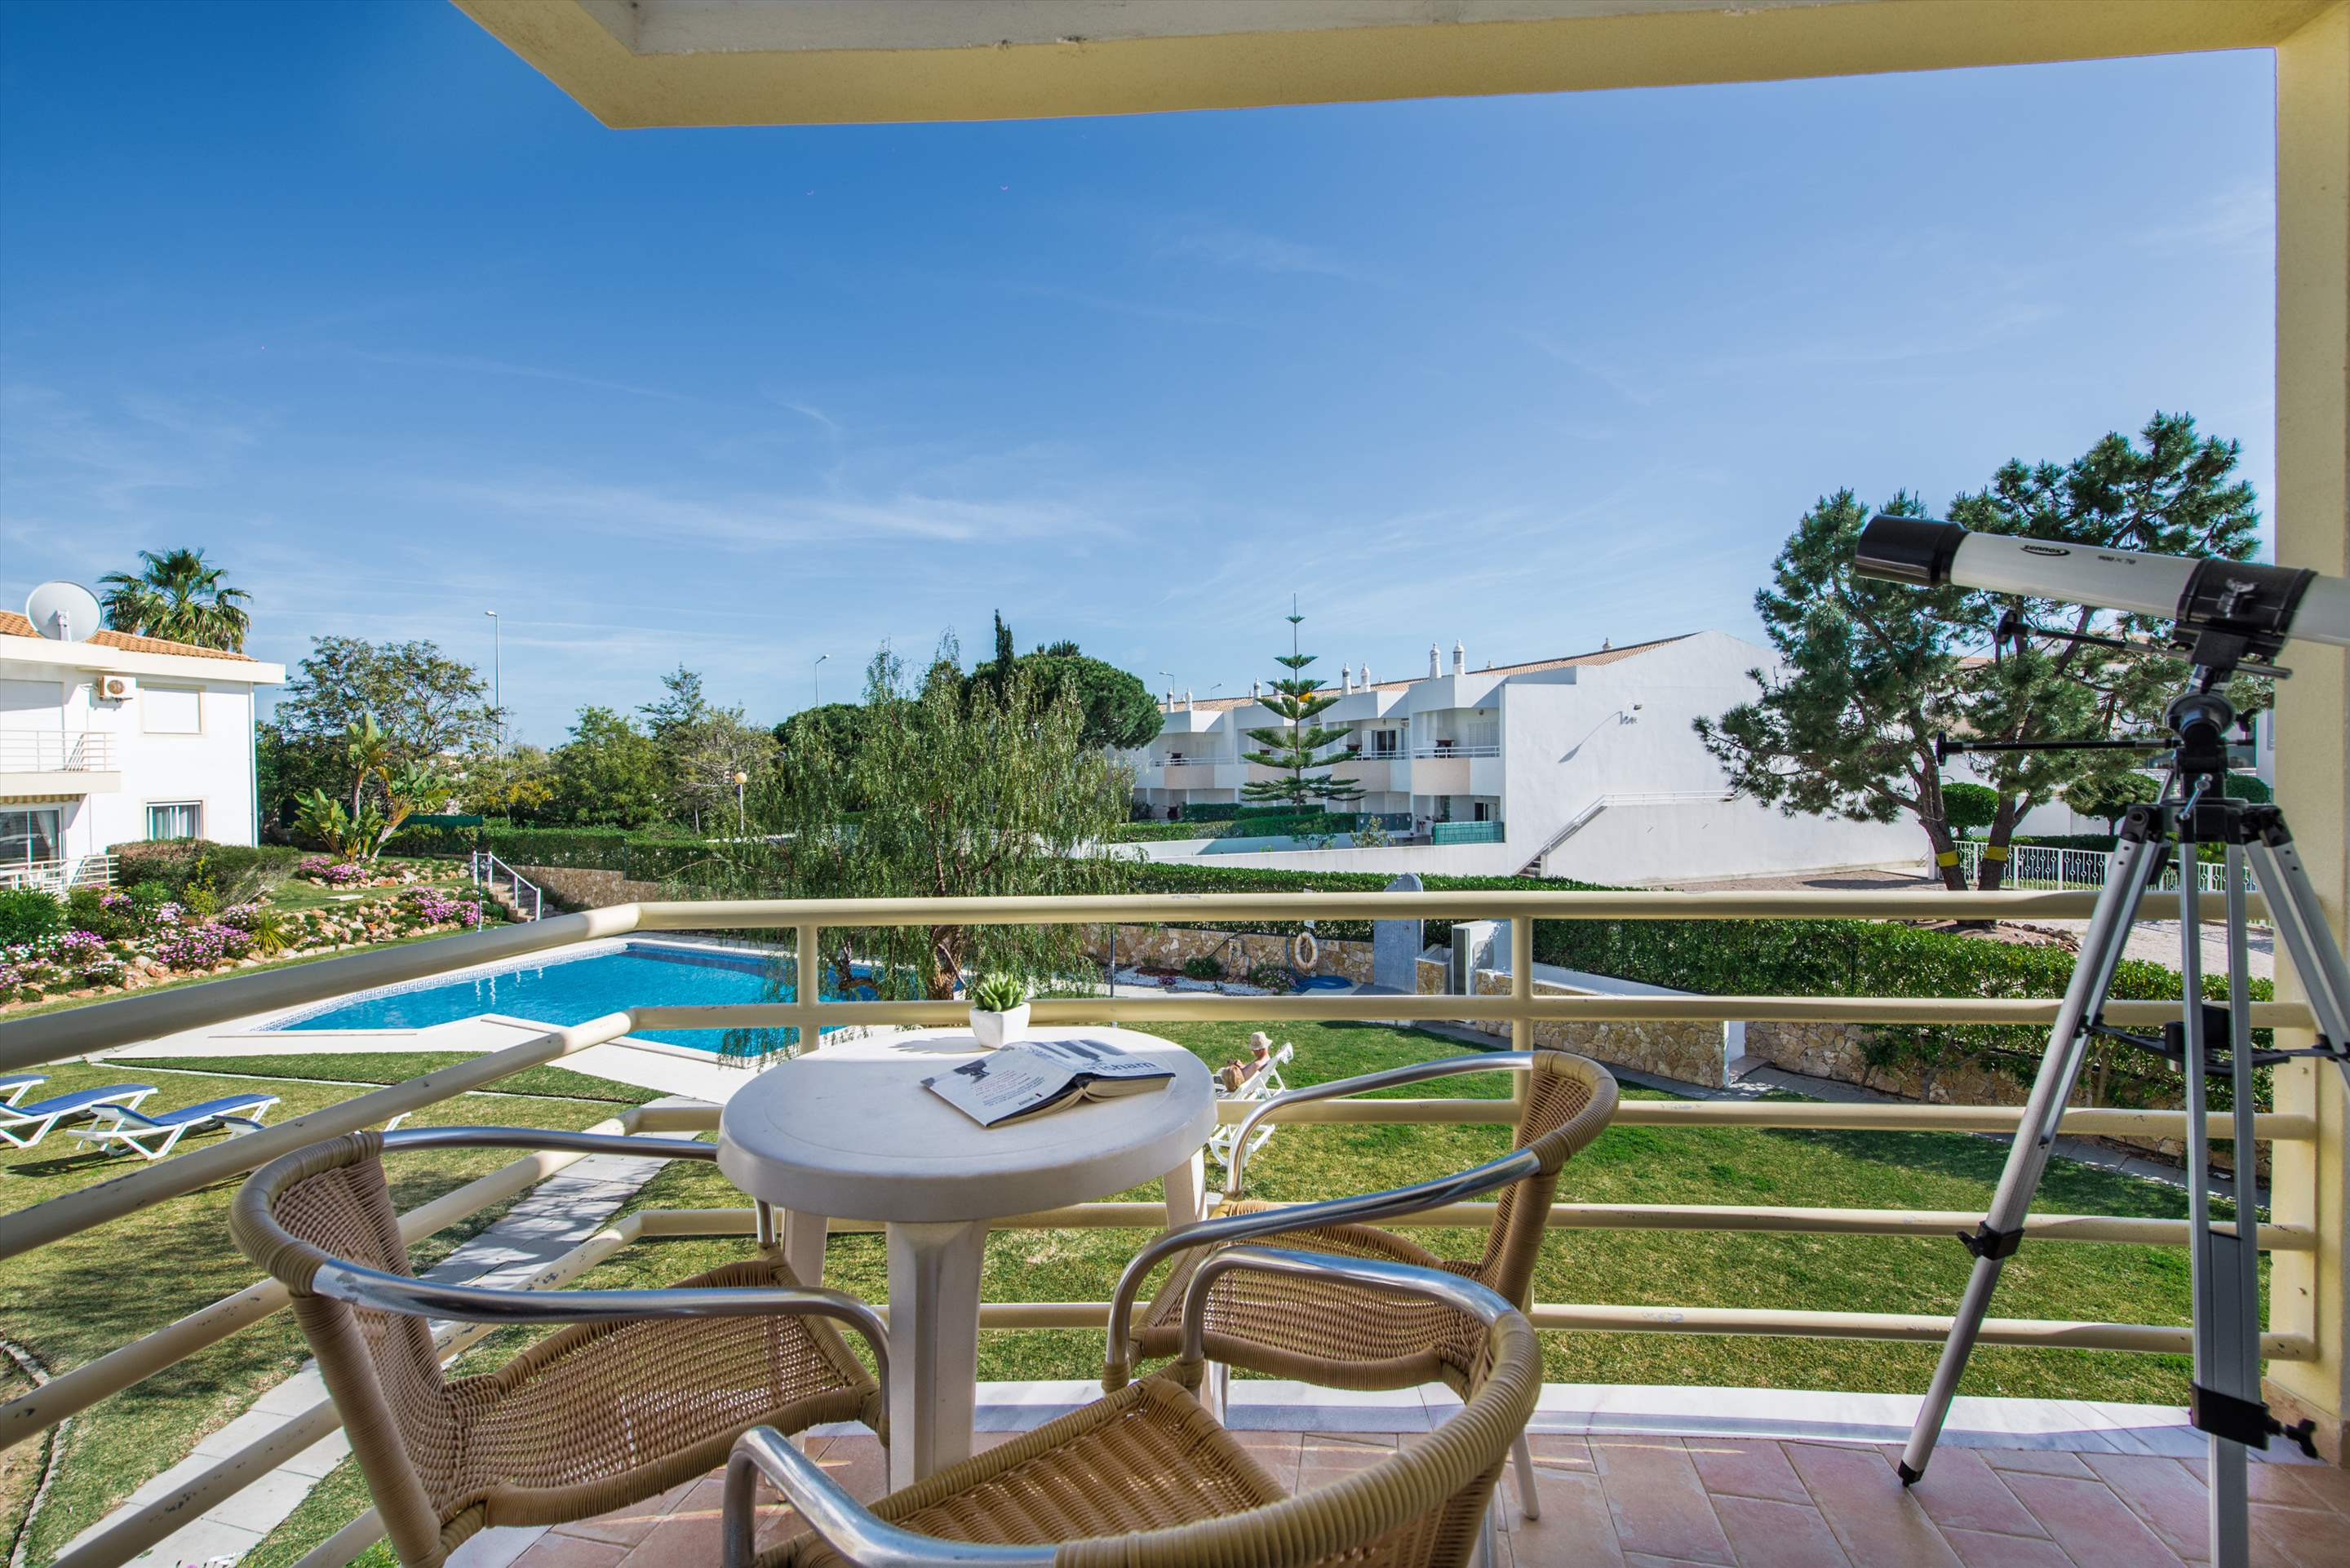 Apt 1E Gale Garden, For 5-6 Persons, 3 bedroom apartment in Gale, Vale da Parra and Guia, Algarve